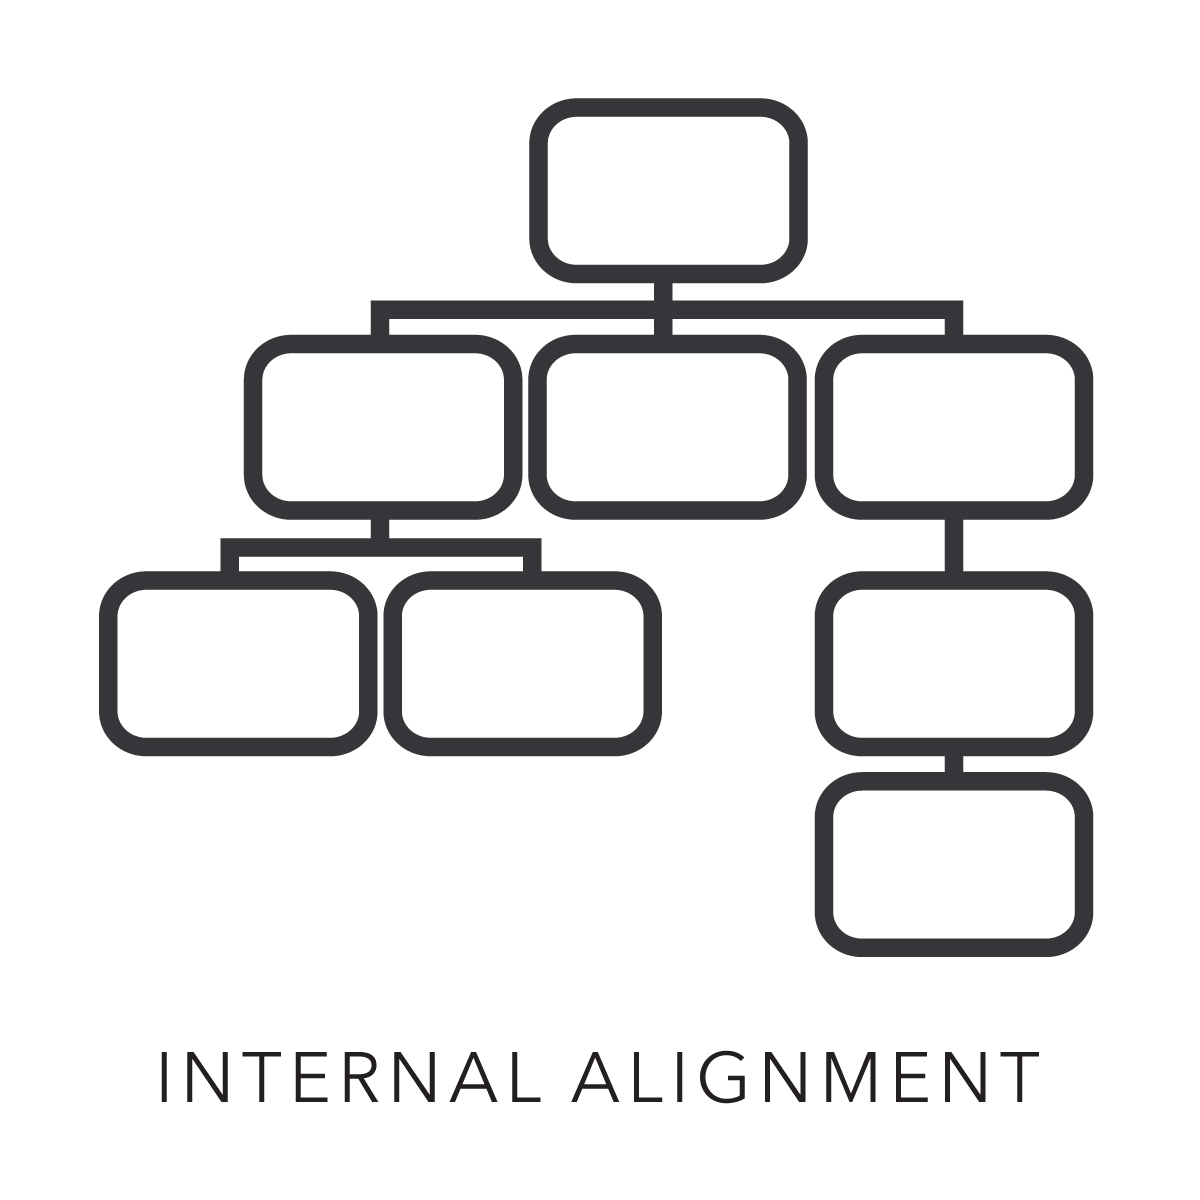 Internal_Alignment_4x.jpg